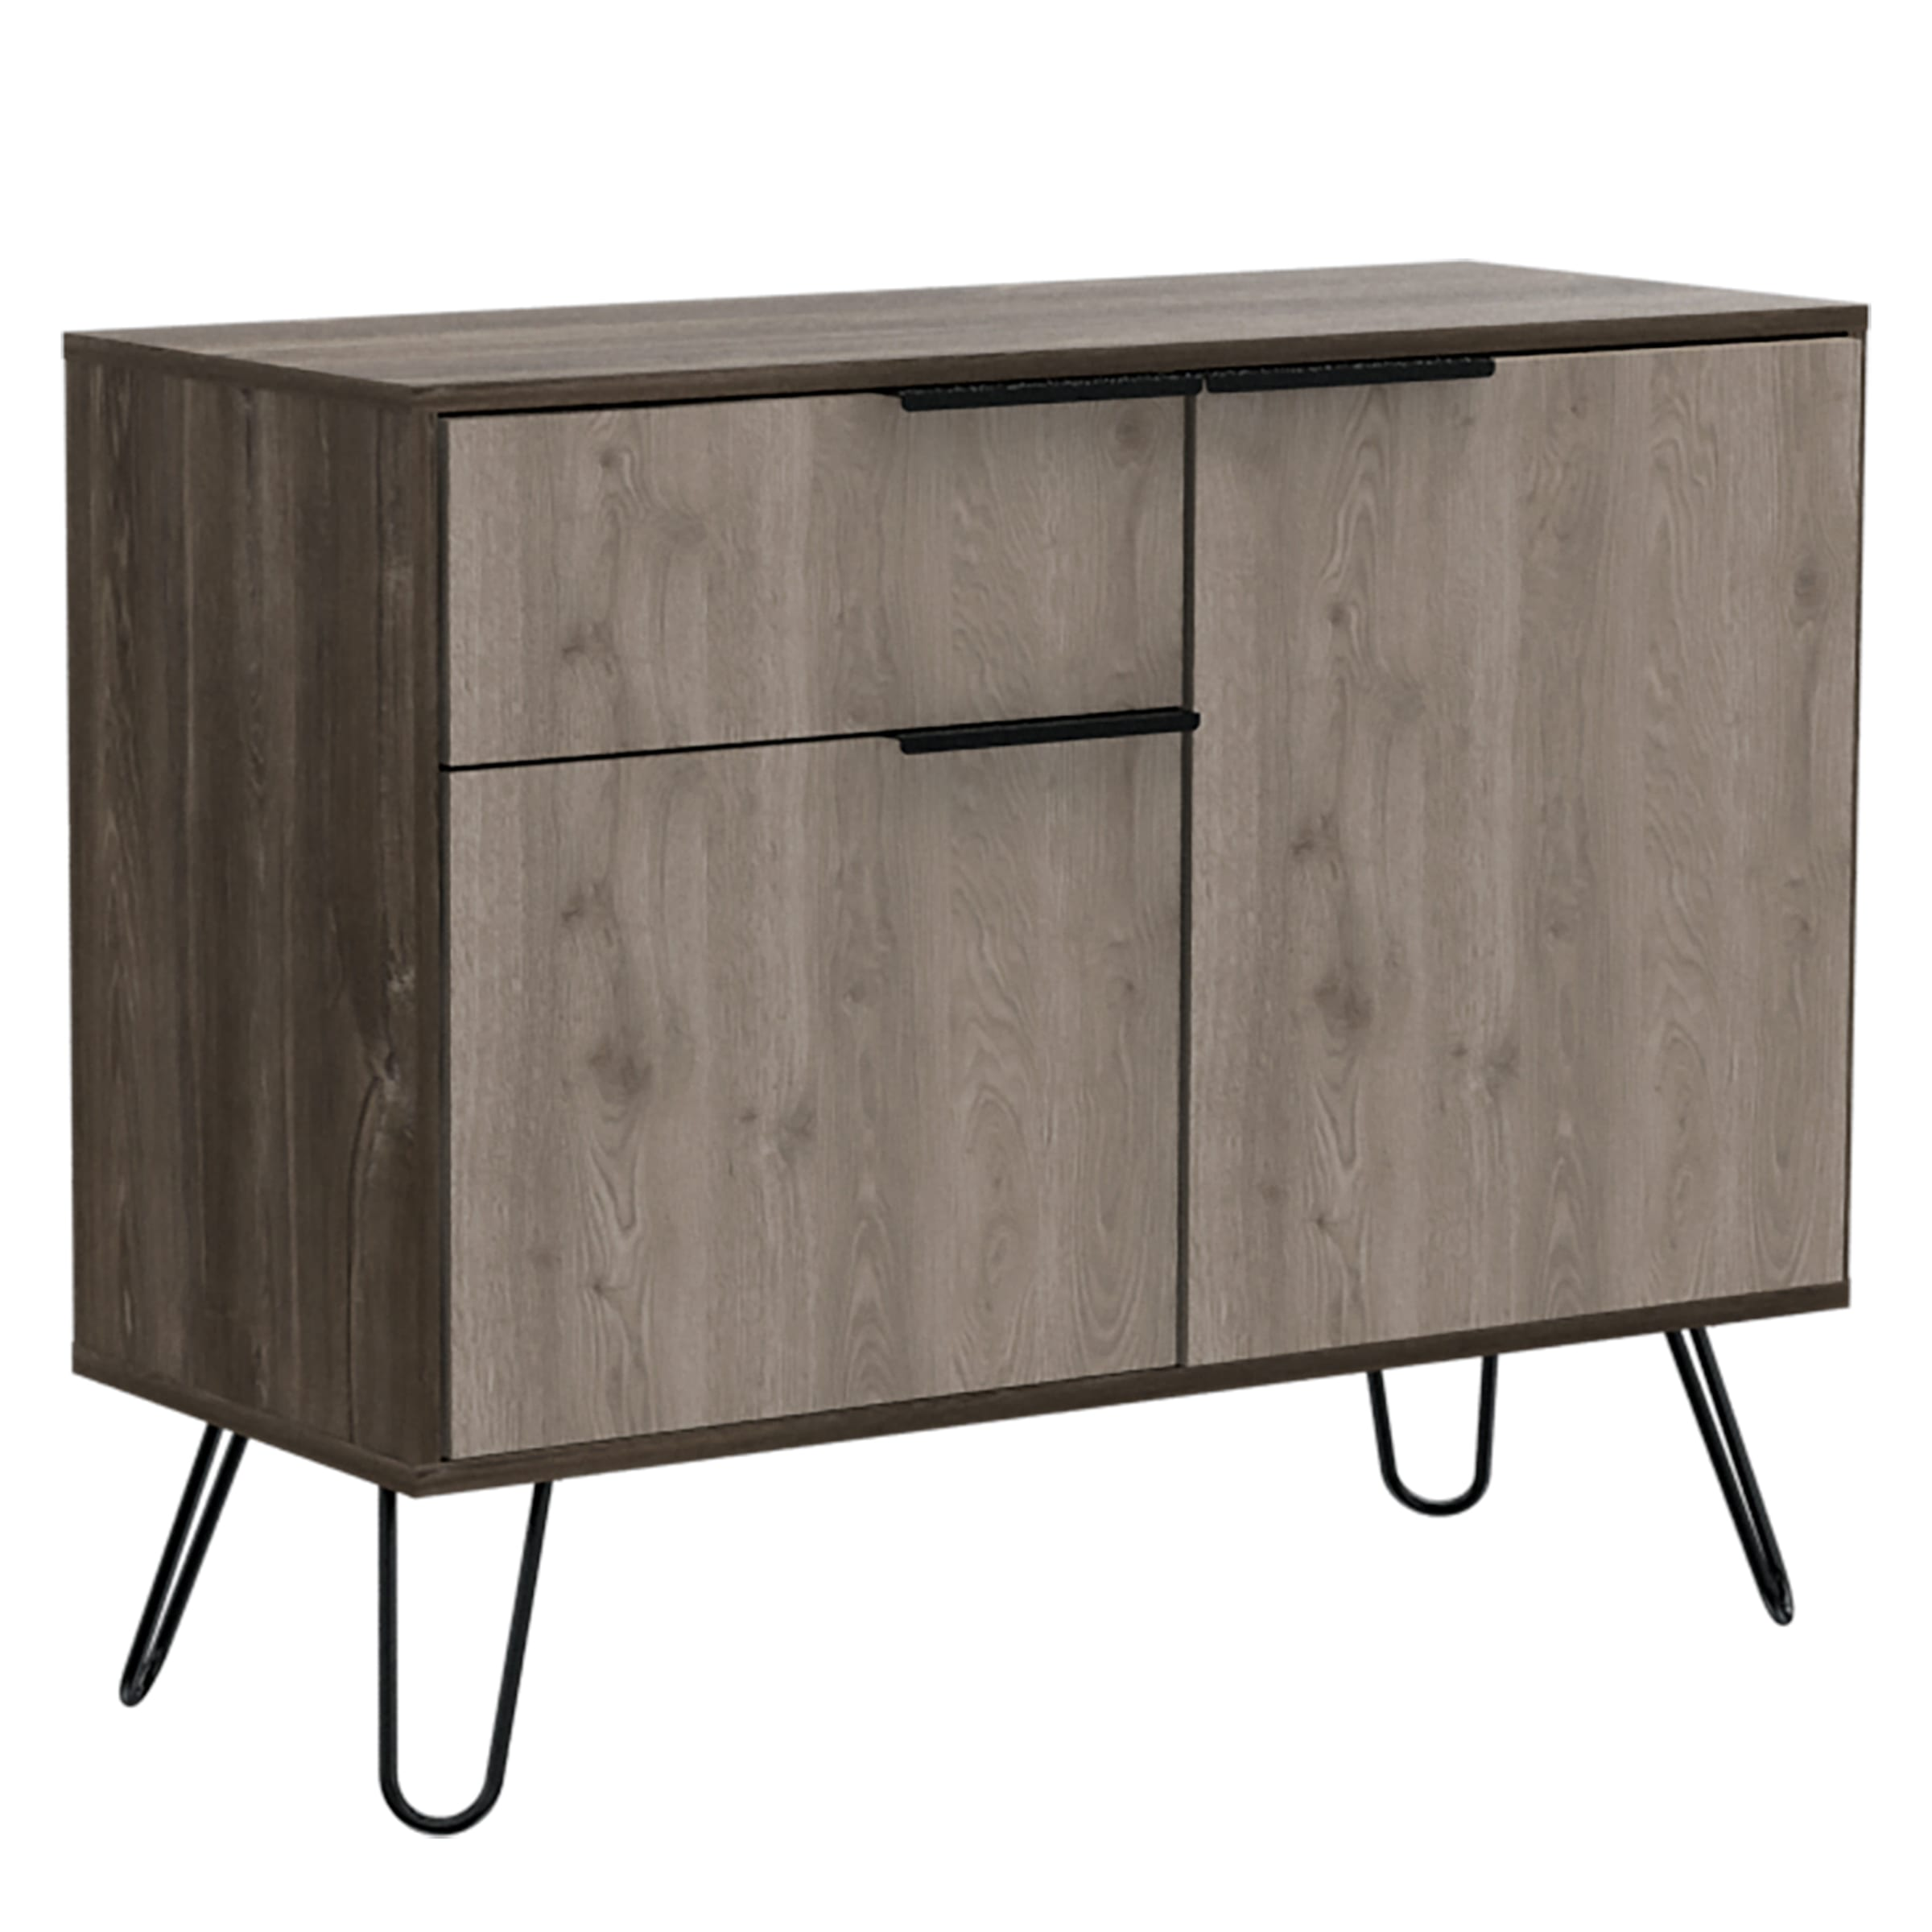 Gobi small sideboard with 2 doors and drawer